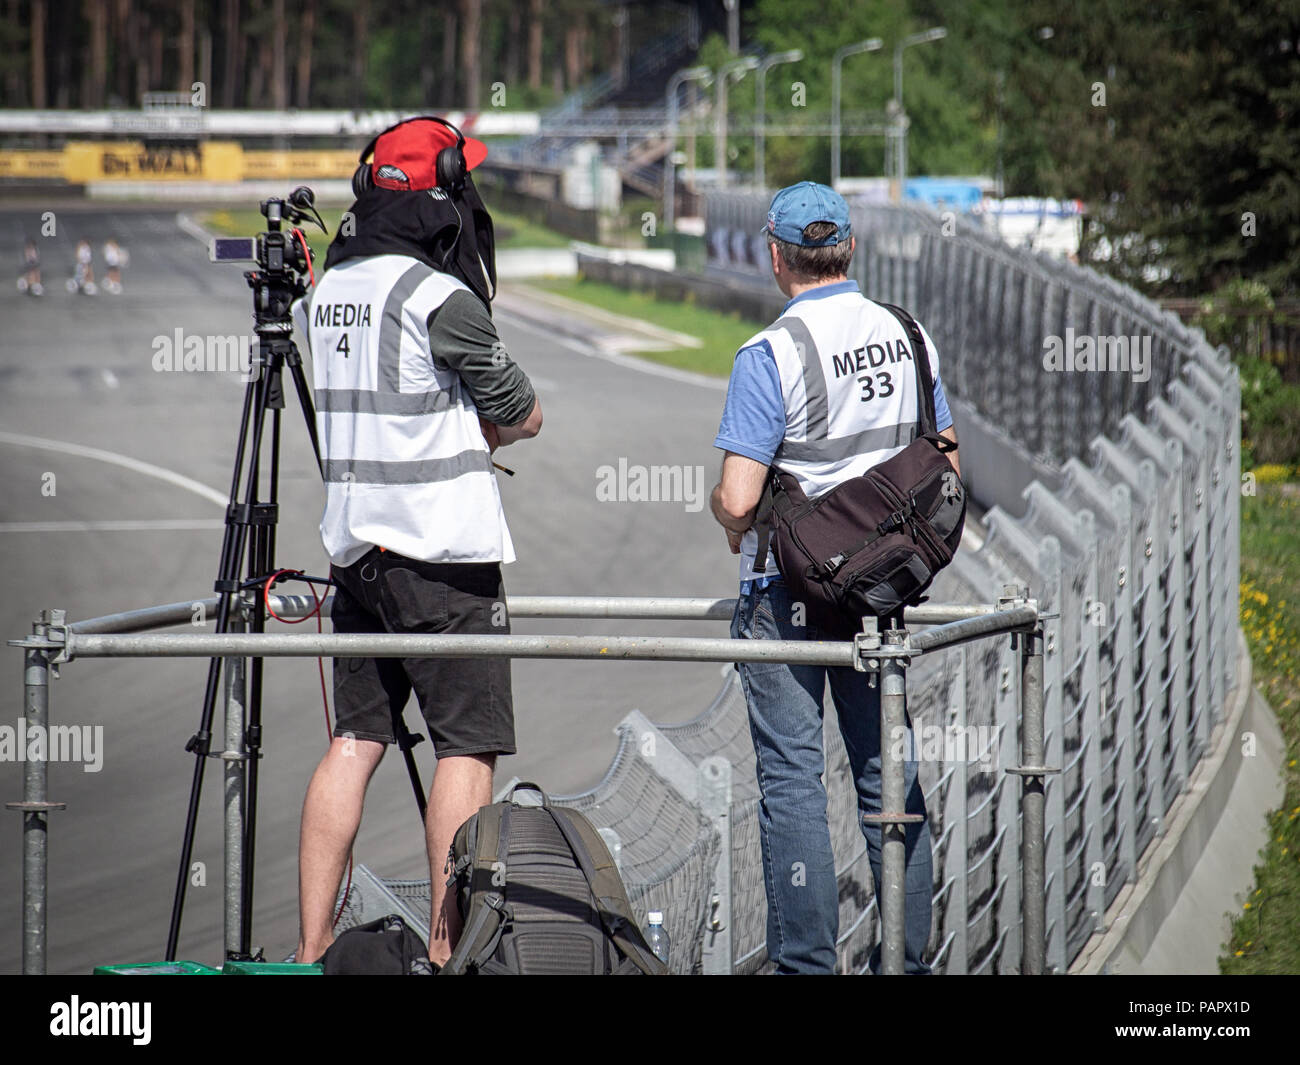 Media cameramen at work - Stock Image